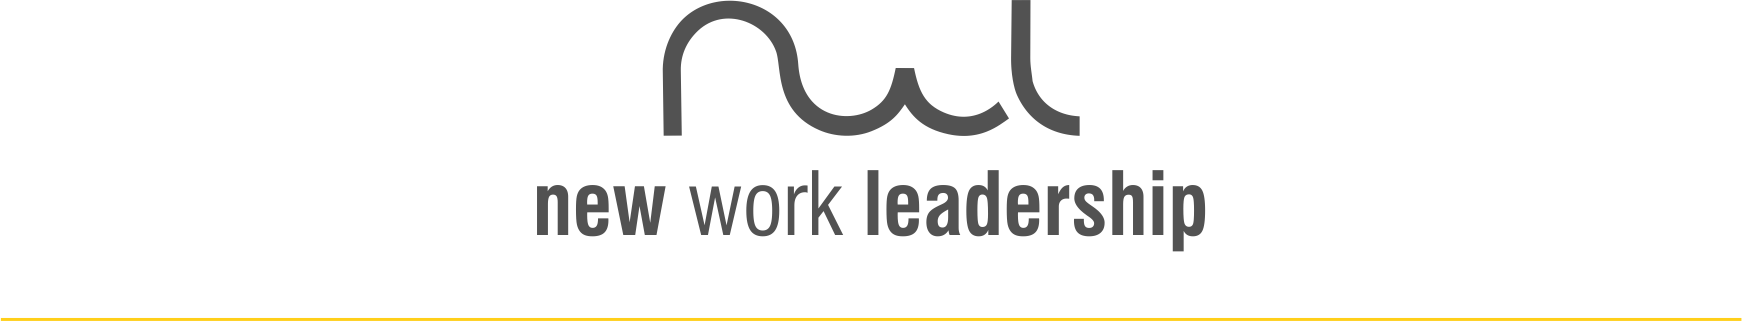 New Work Leadership